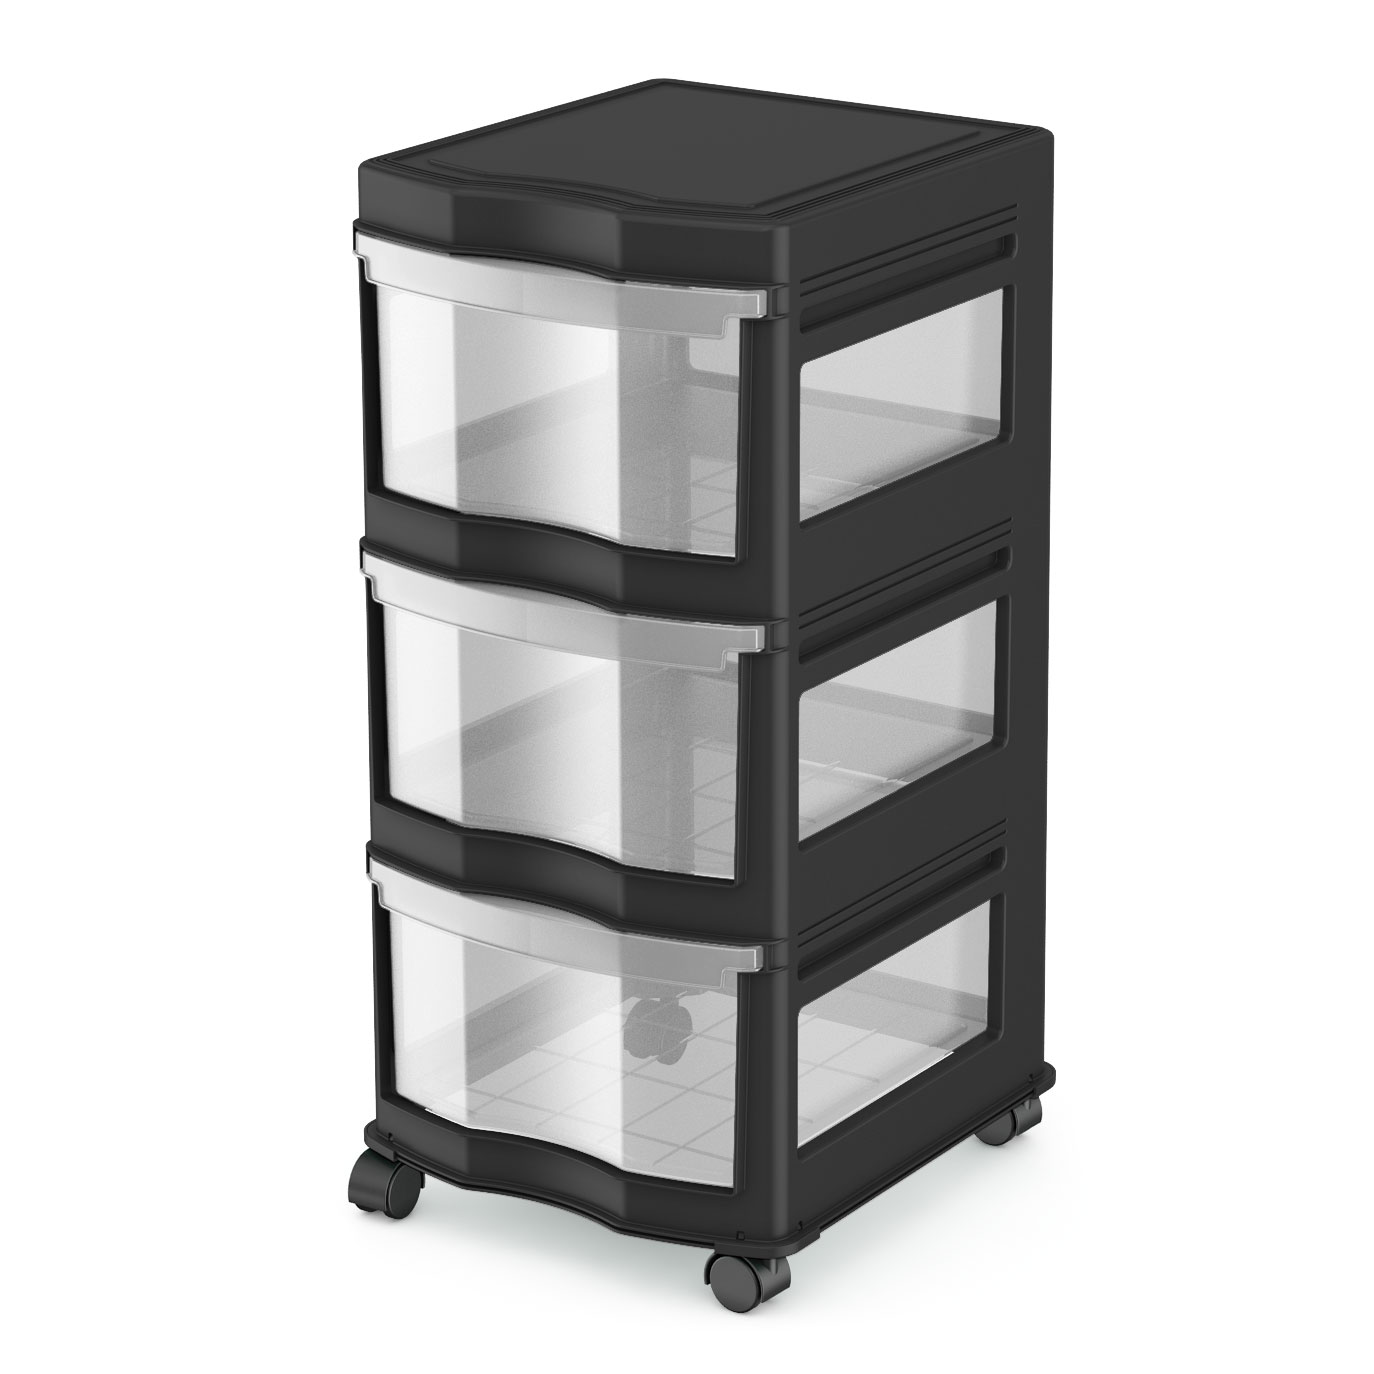 p cabinet small black drawer organizers parts mils organizer akro clarified with drawers compartment plastic the